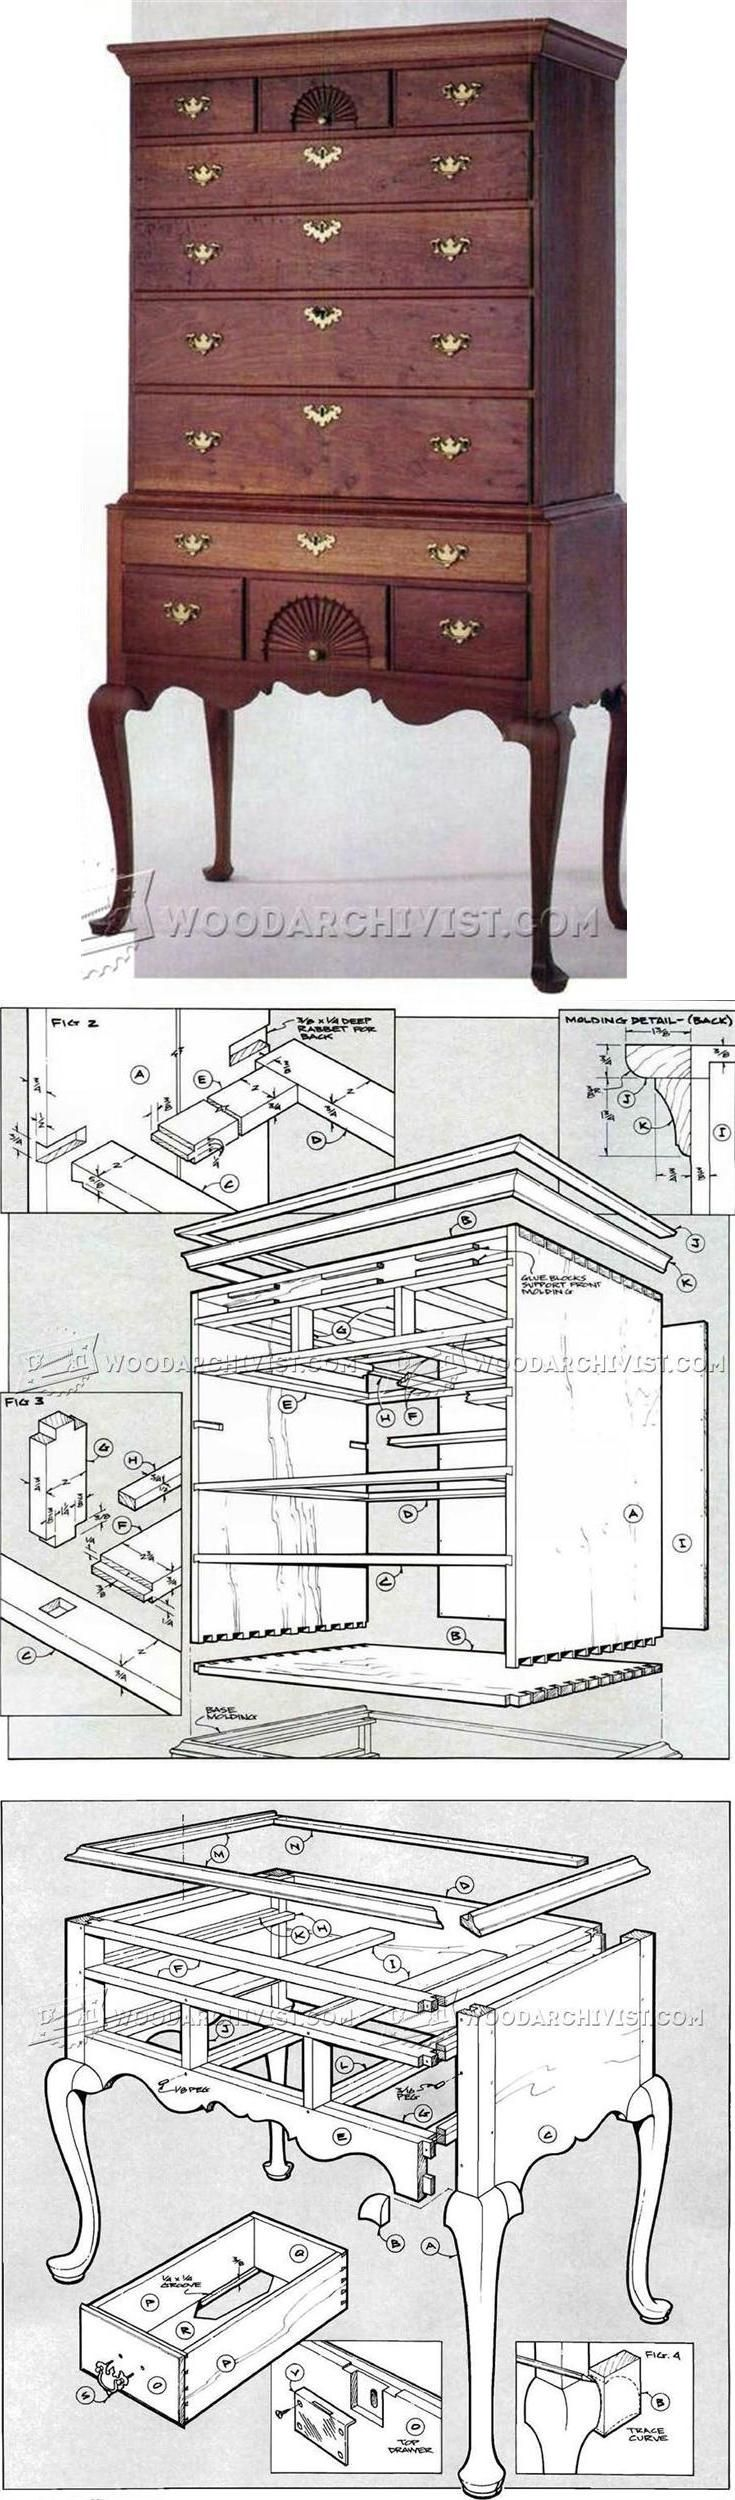 Connecticut River Valley Highboy Plans - Furniture Plans and Projects   WoodArchivist.com